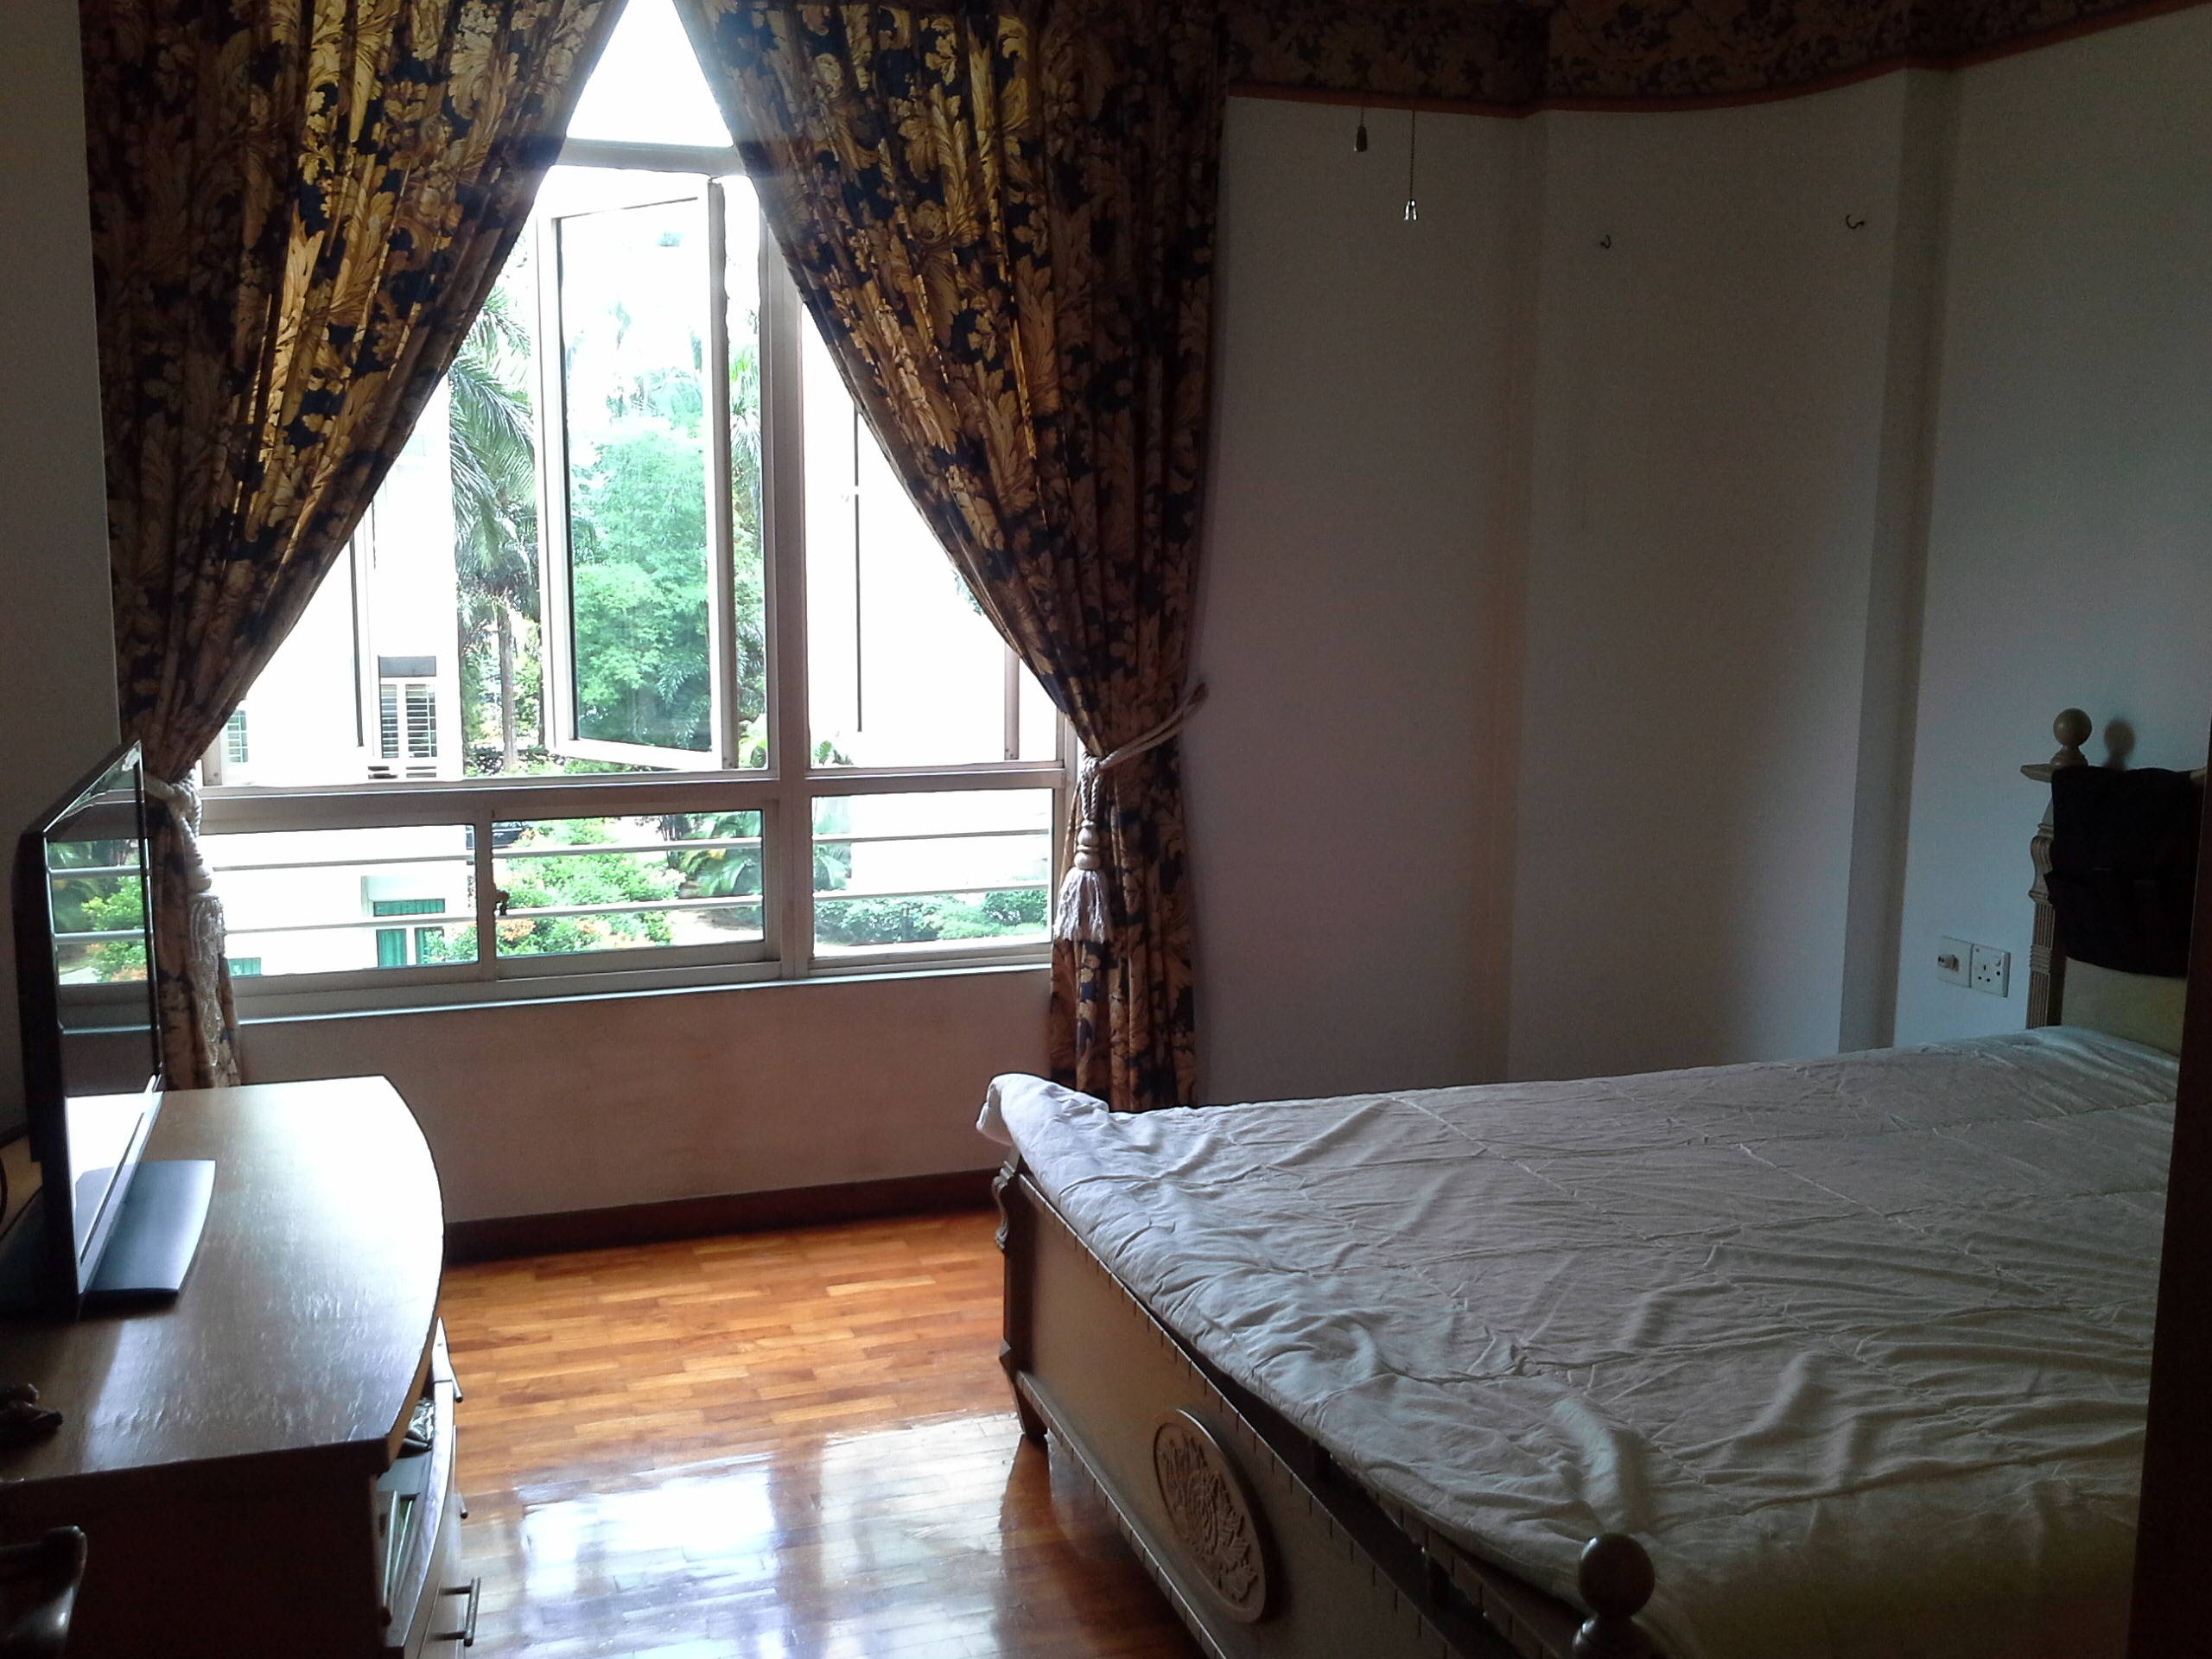 Rent a room in Singapore | Room Rental Singapore